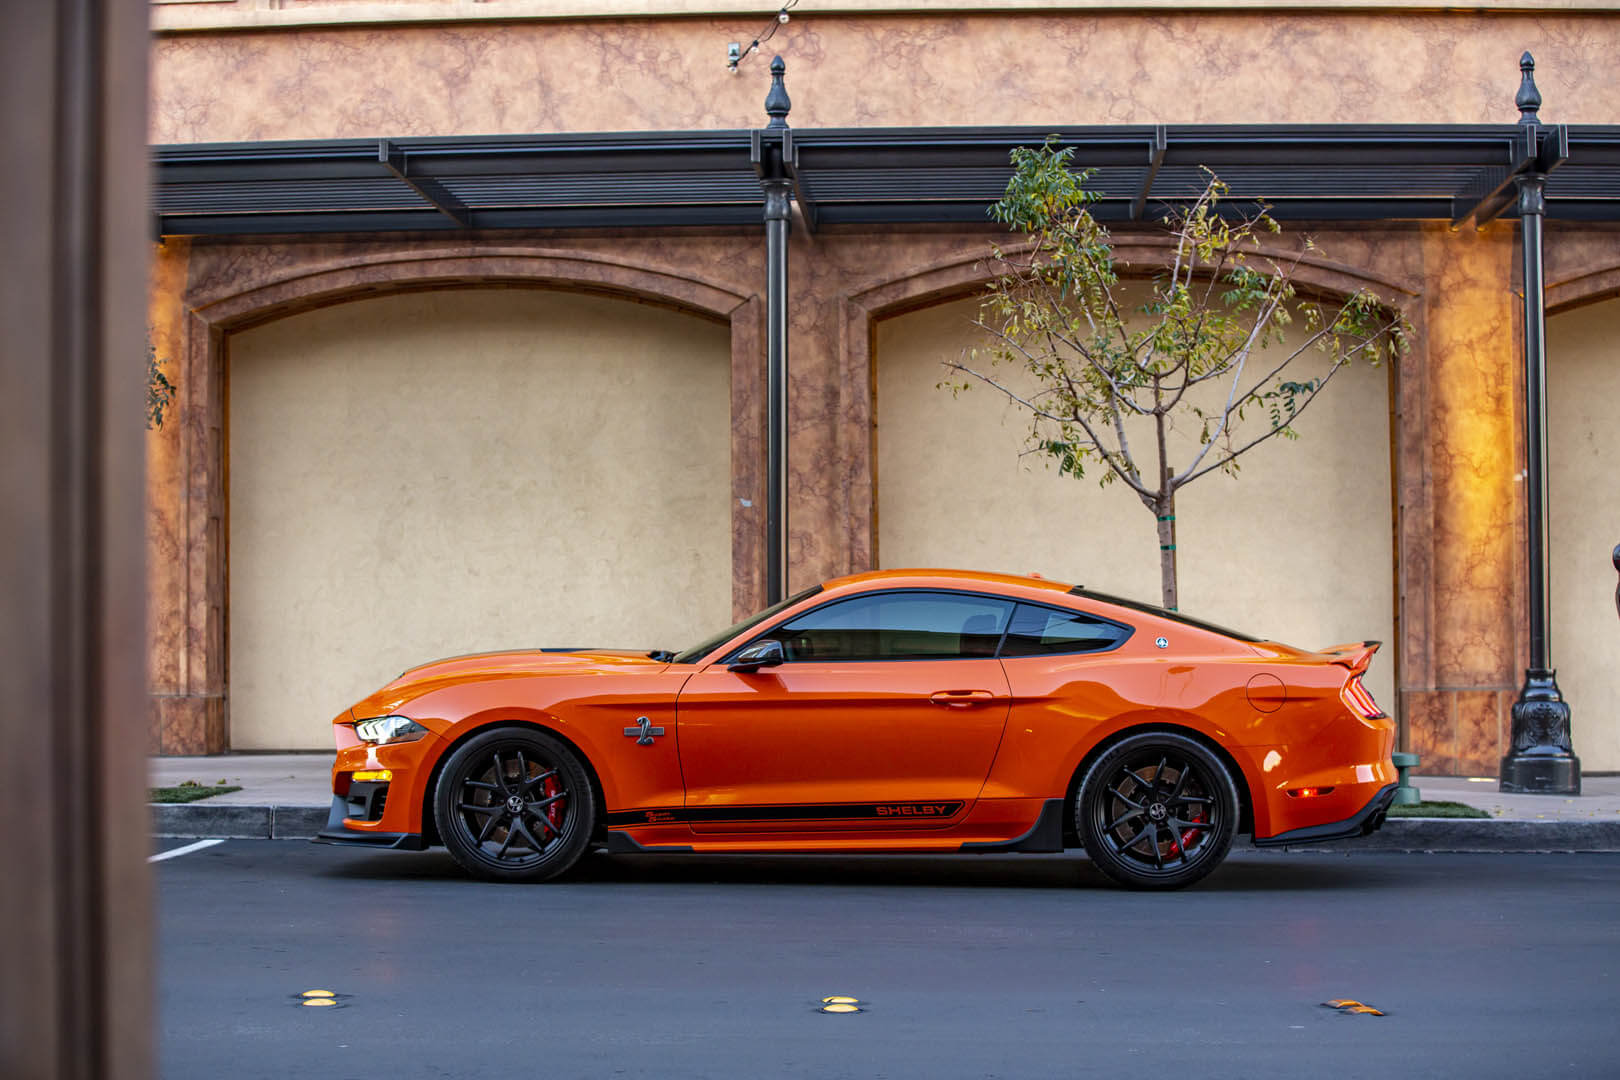 The 2020 Ford Shelby Super Snake 'Bold Edition' features three exterior colors inspired by the 1970s.